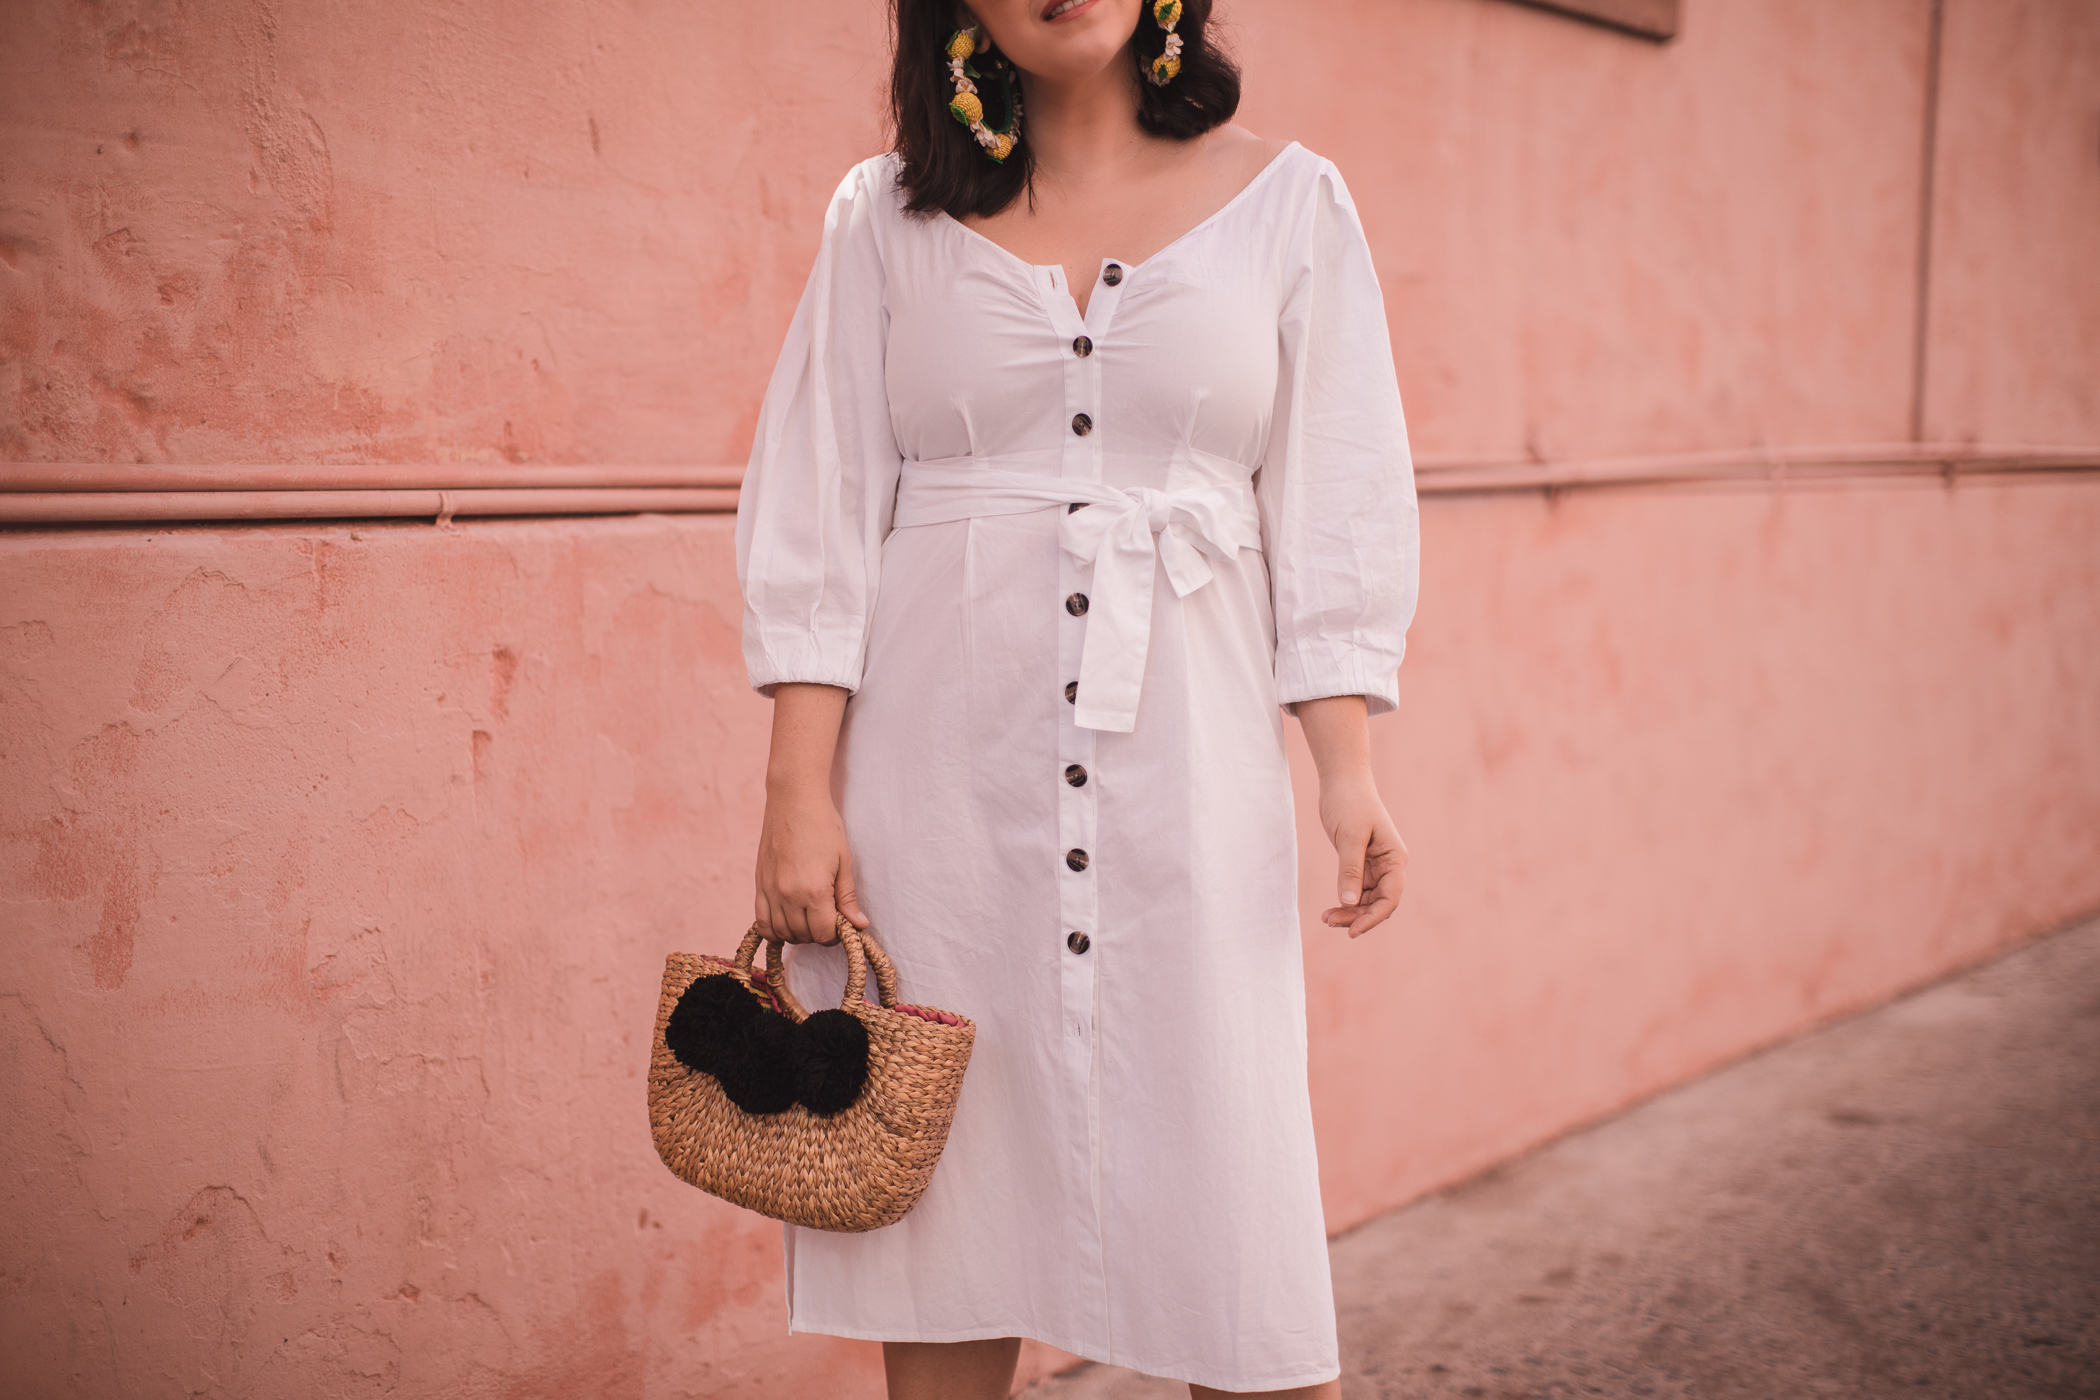 Vacation Worthy Dresses Under $200